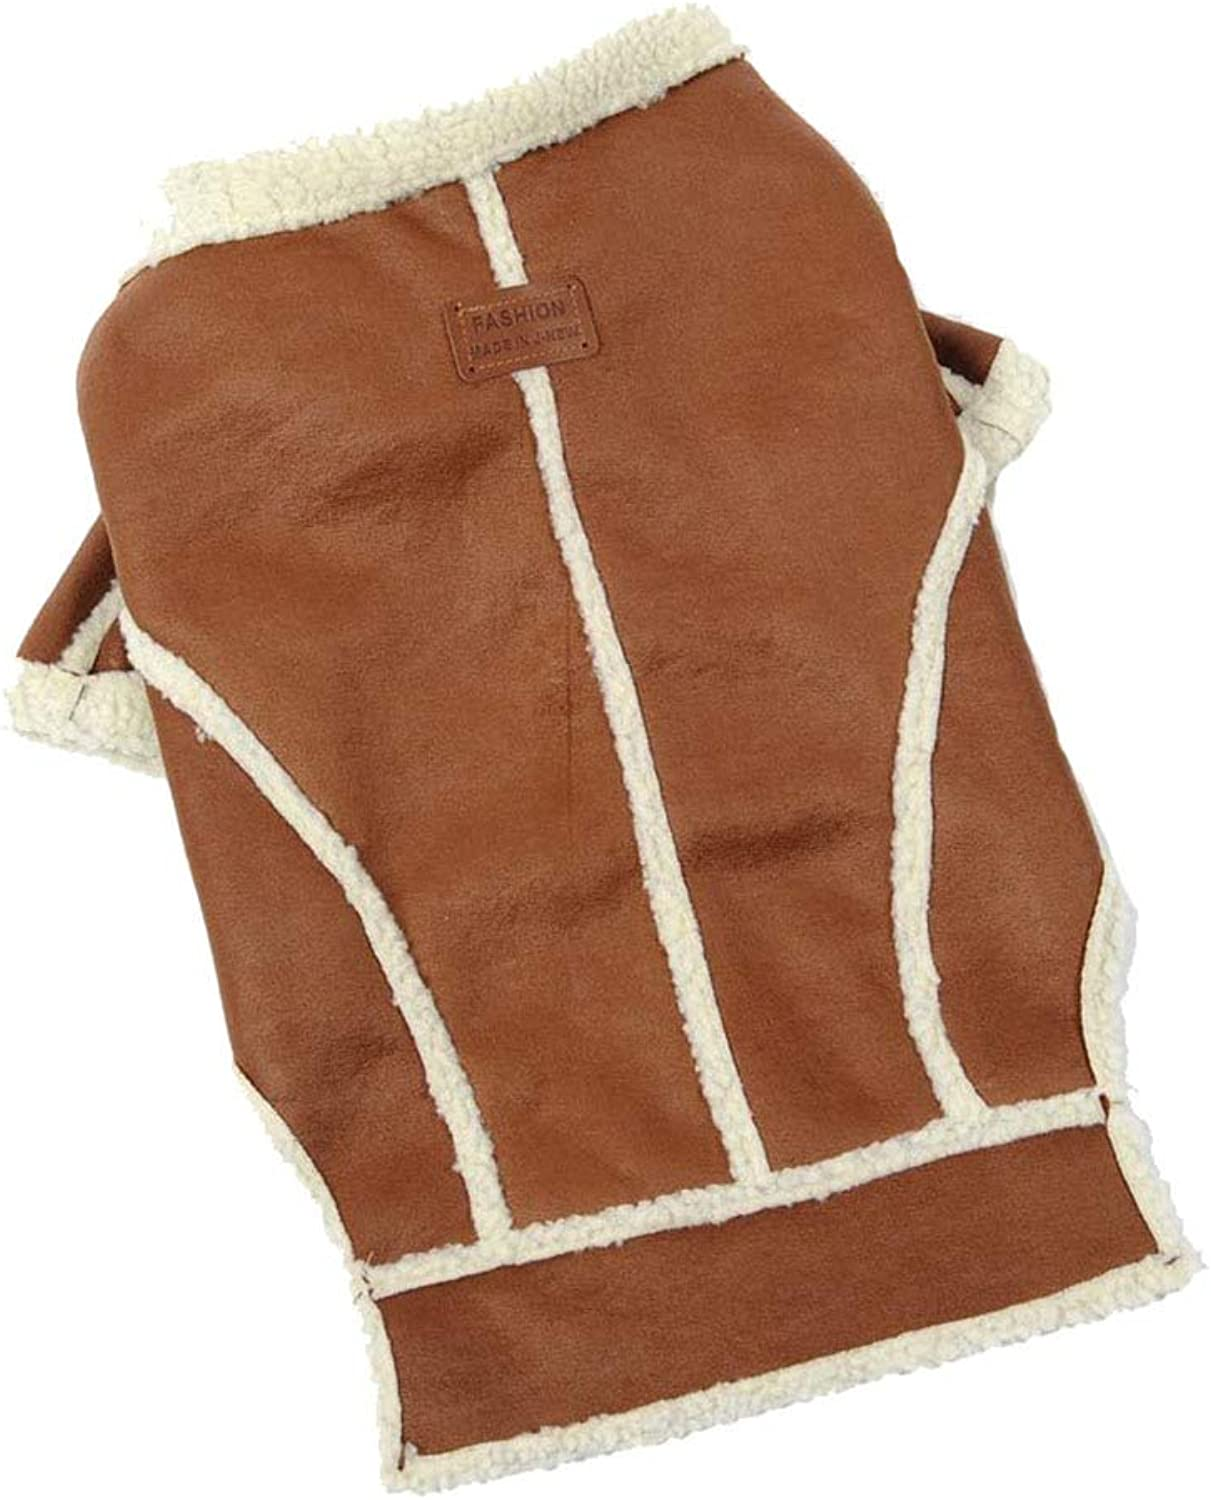 Big Dog Winter Cotton Coat Thick Warm Cold Predection Pet Outdoor Casual Jacket,Brown,5 Sizes,Brown3XLchestgirth(24.426.0in)